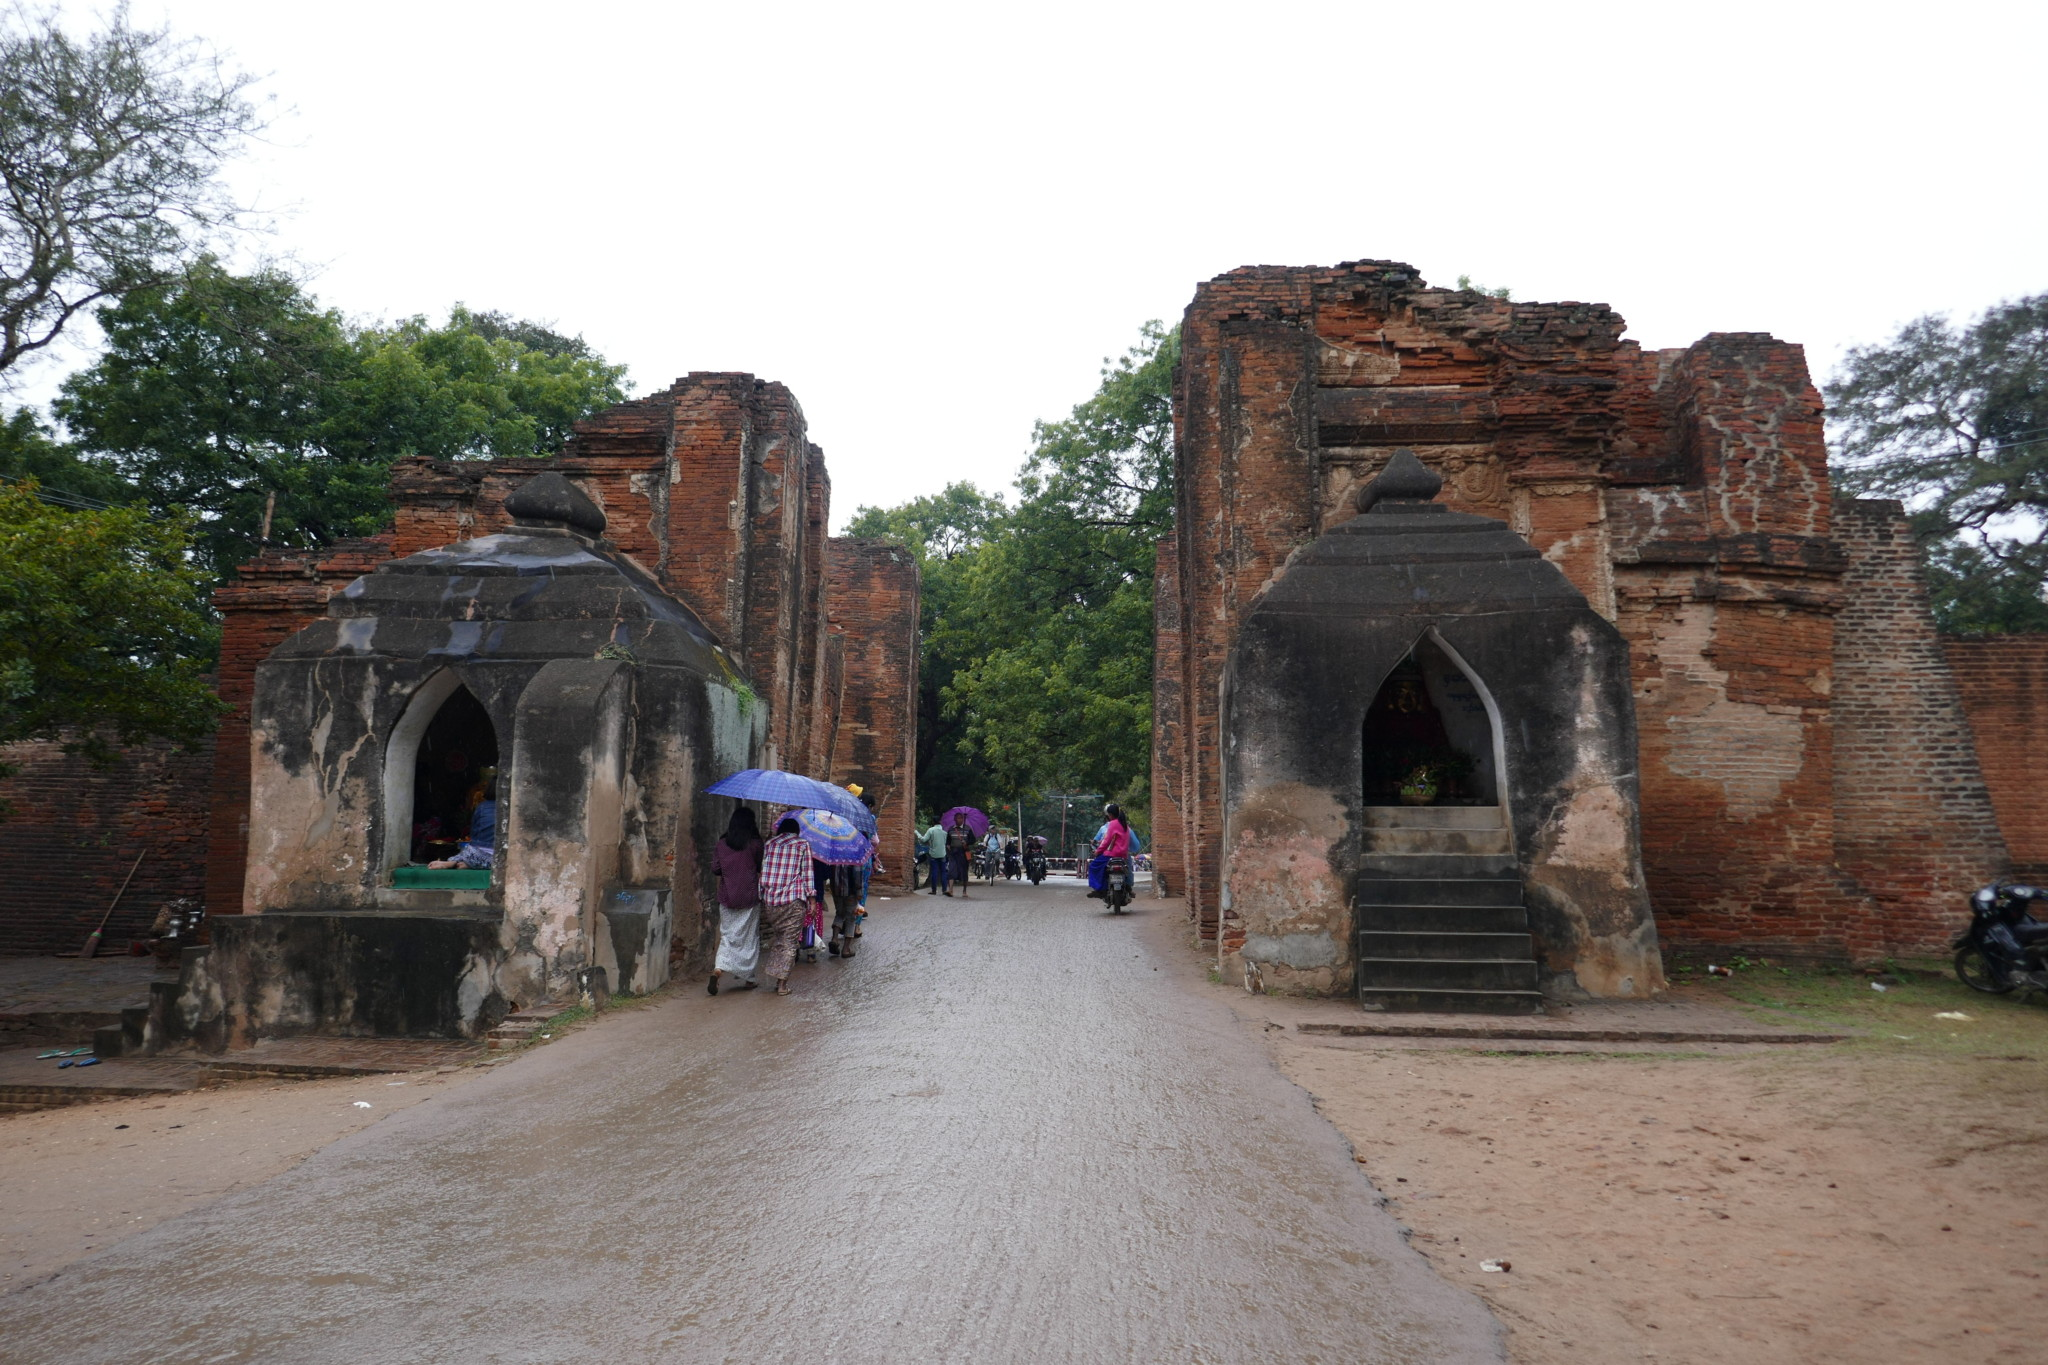 Riding through Tharabar Gate in Bagan